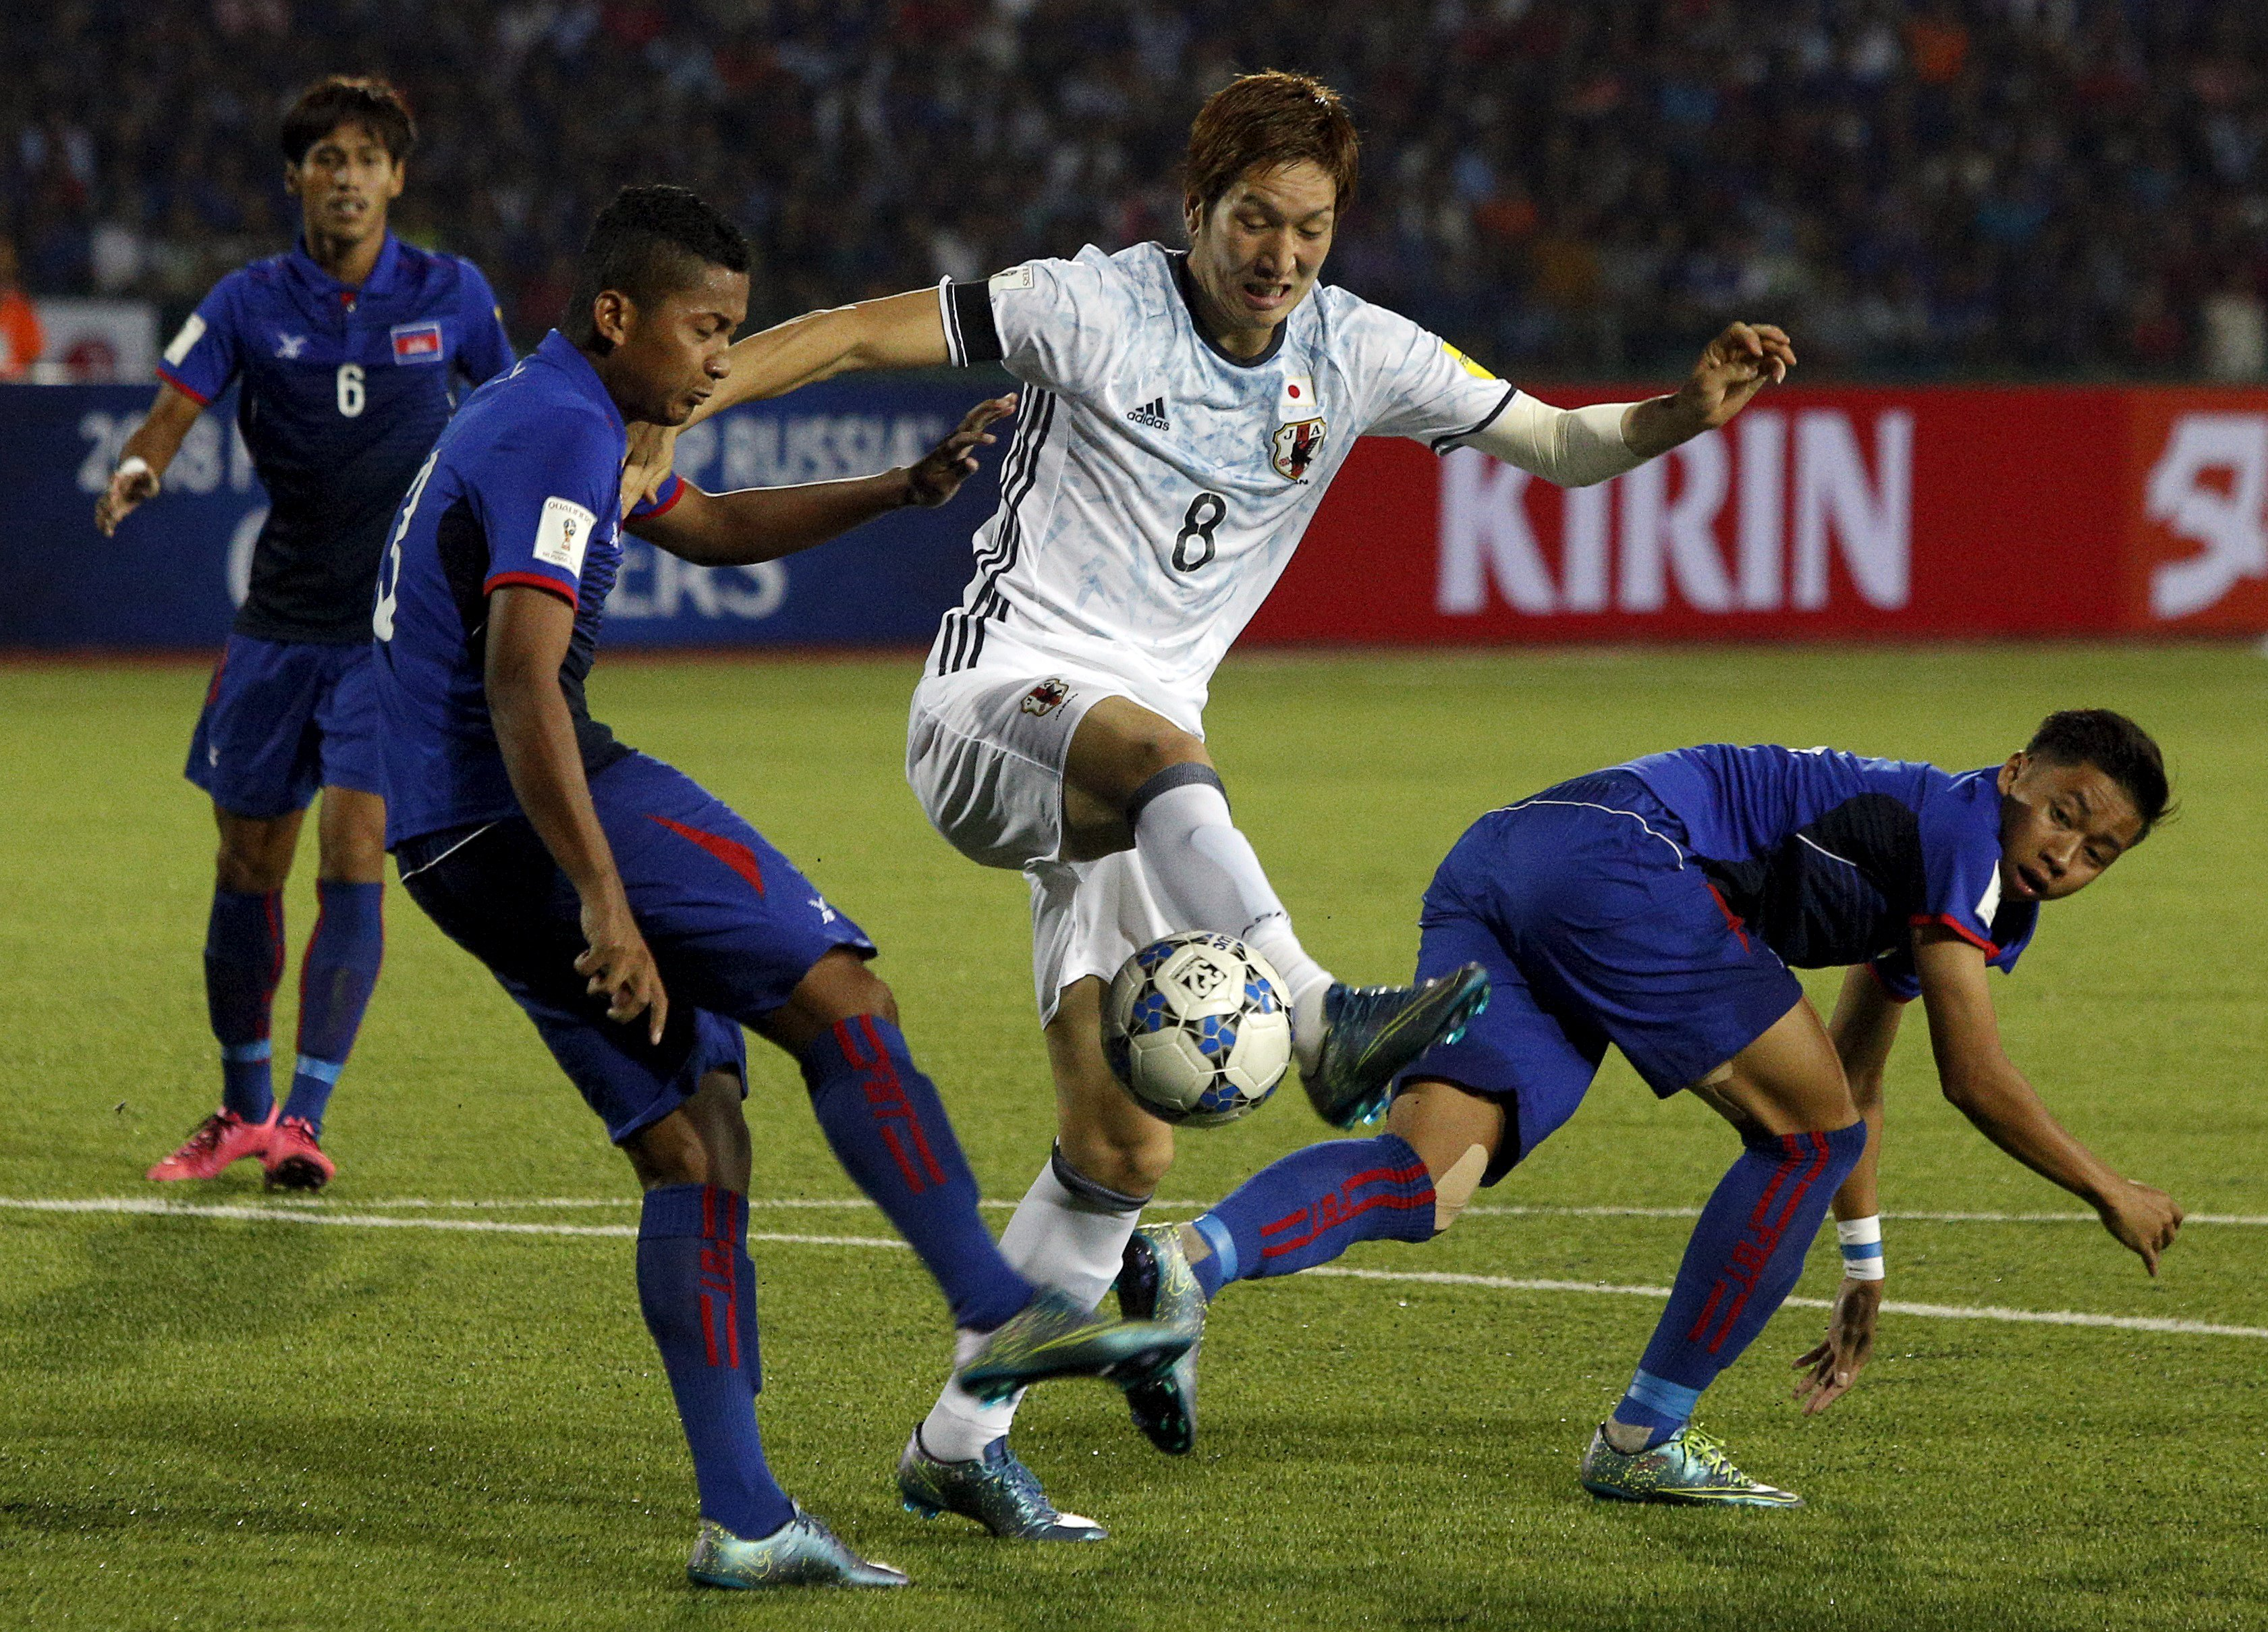 Japan's Genki Haraguchi (center) takes on the Cambodia defense during Japan's 2-0 World Cup qualifying win in Phnom Penh on Tuesday. | REUTERS